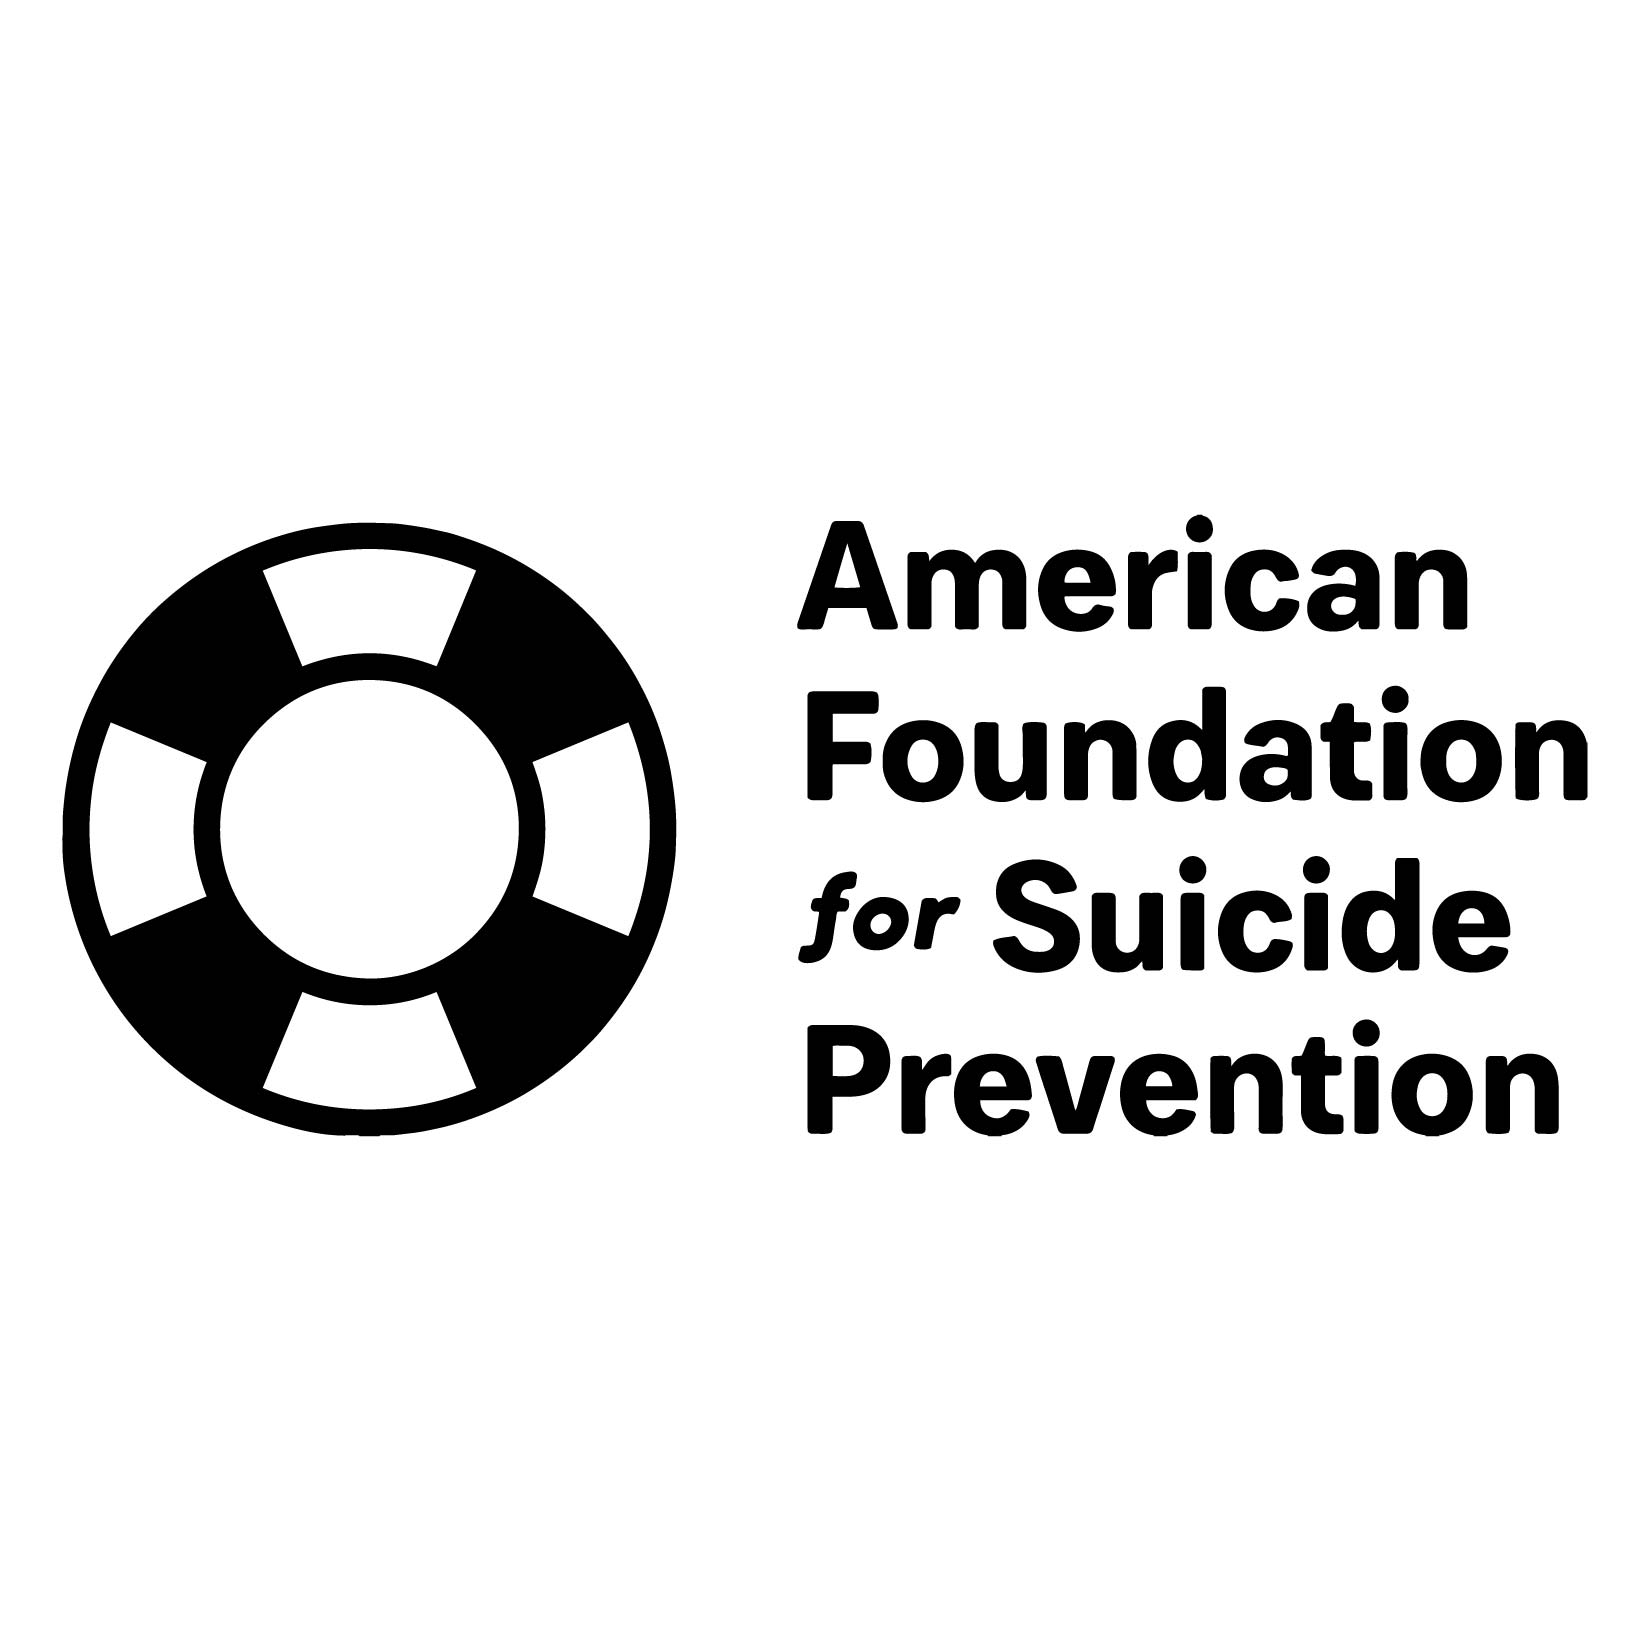 AFSP raises awareness, funds scientific research and provides resources and aid to those affected by suicide.